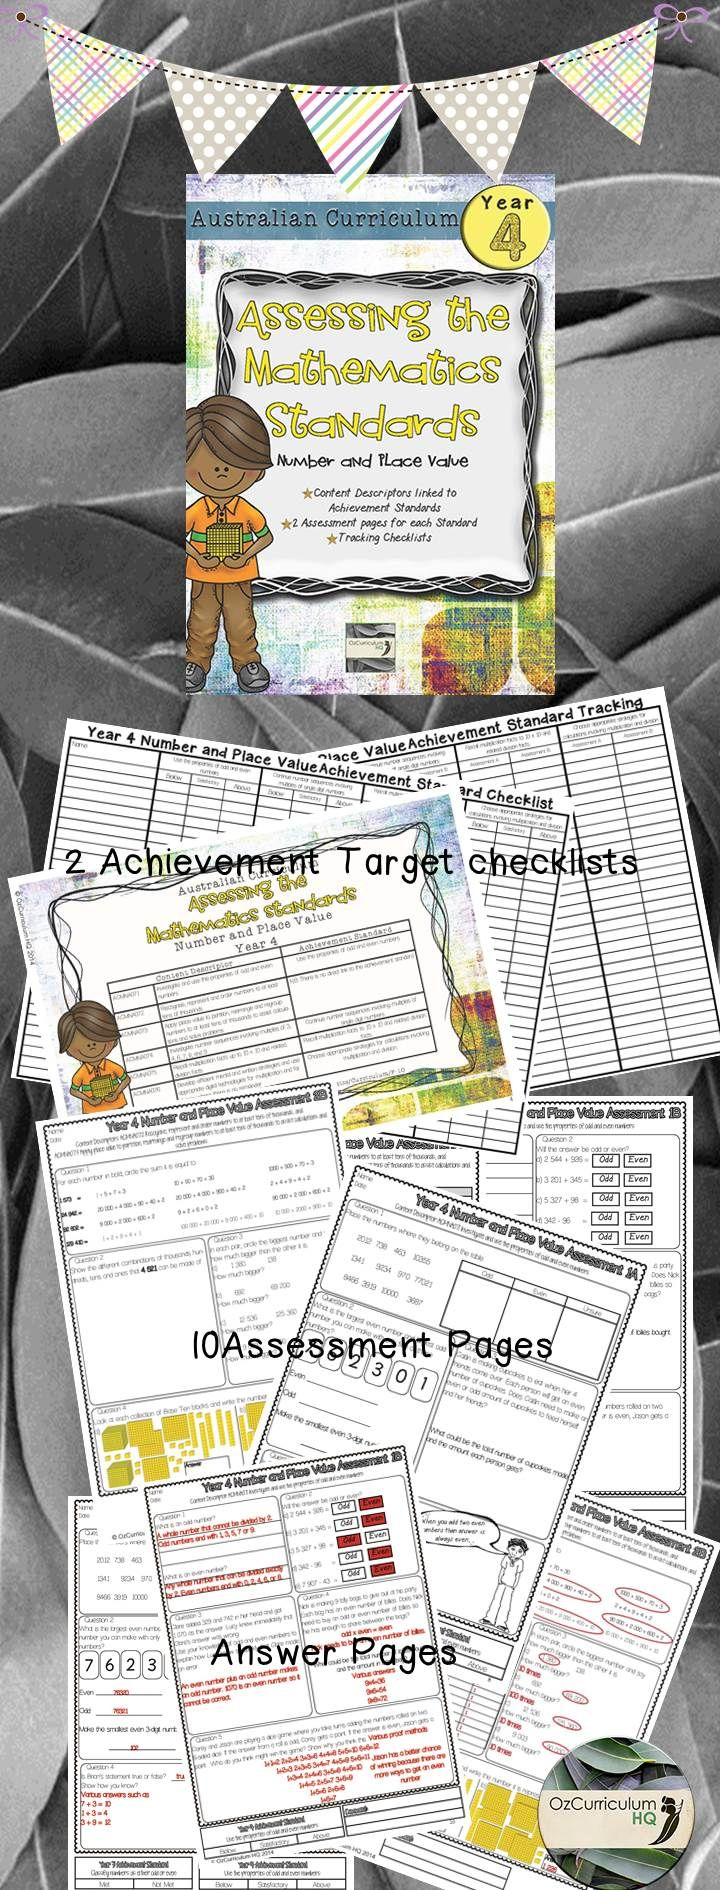 Maths assessment pages directly linking each of the content descriptors and achievement standard of the Year 4 Australian Curriculum for Mathematics. Content Descriptors Covered ACMNA071 ACMNA072 ACMNA073 ACMNA074 ACMNA075 ACMNA076